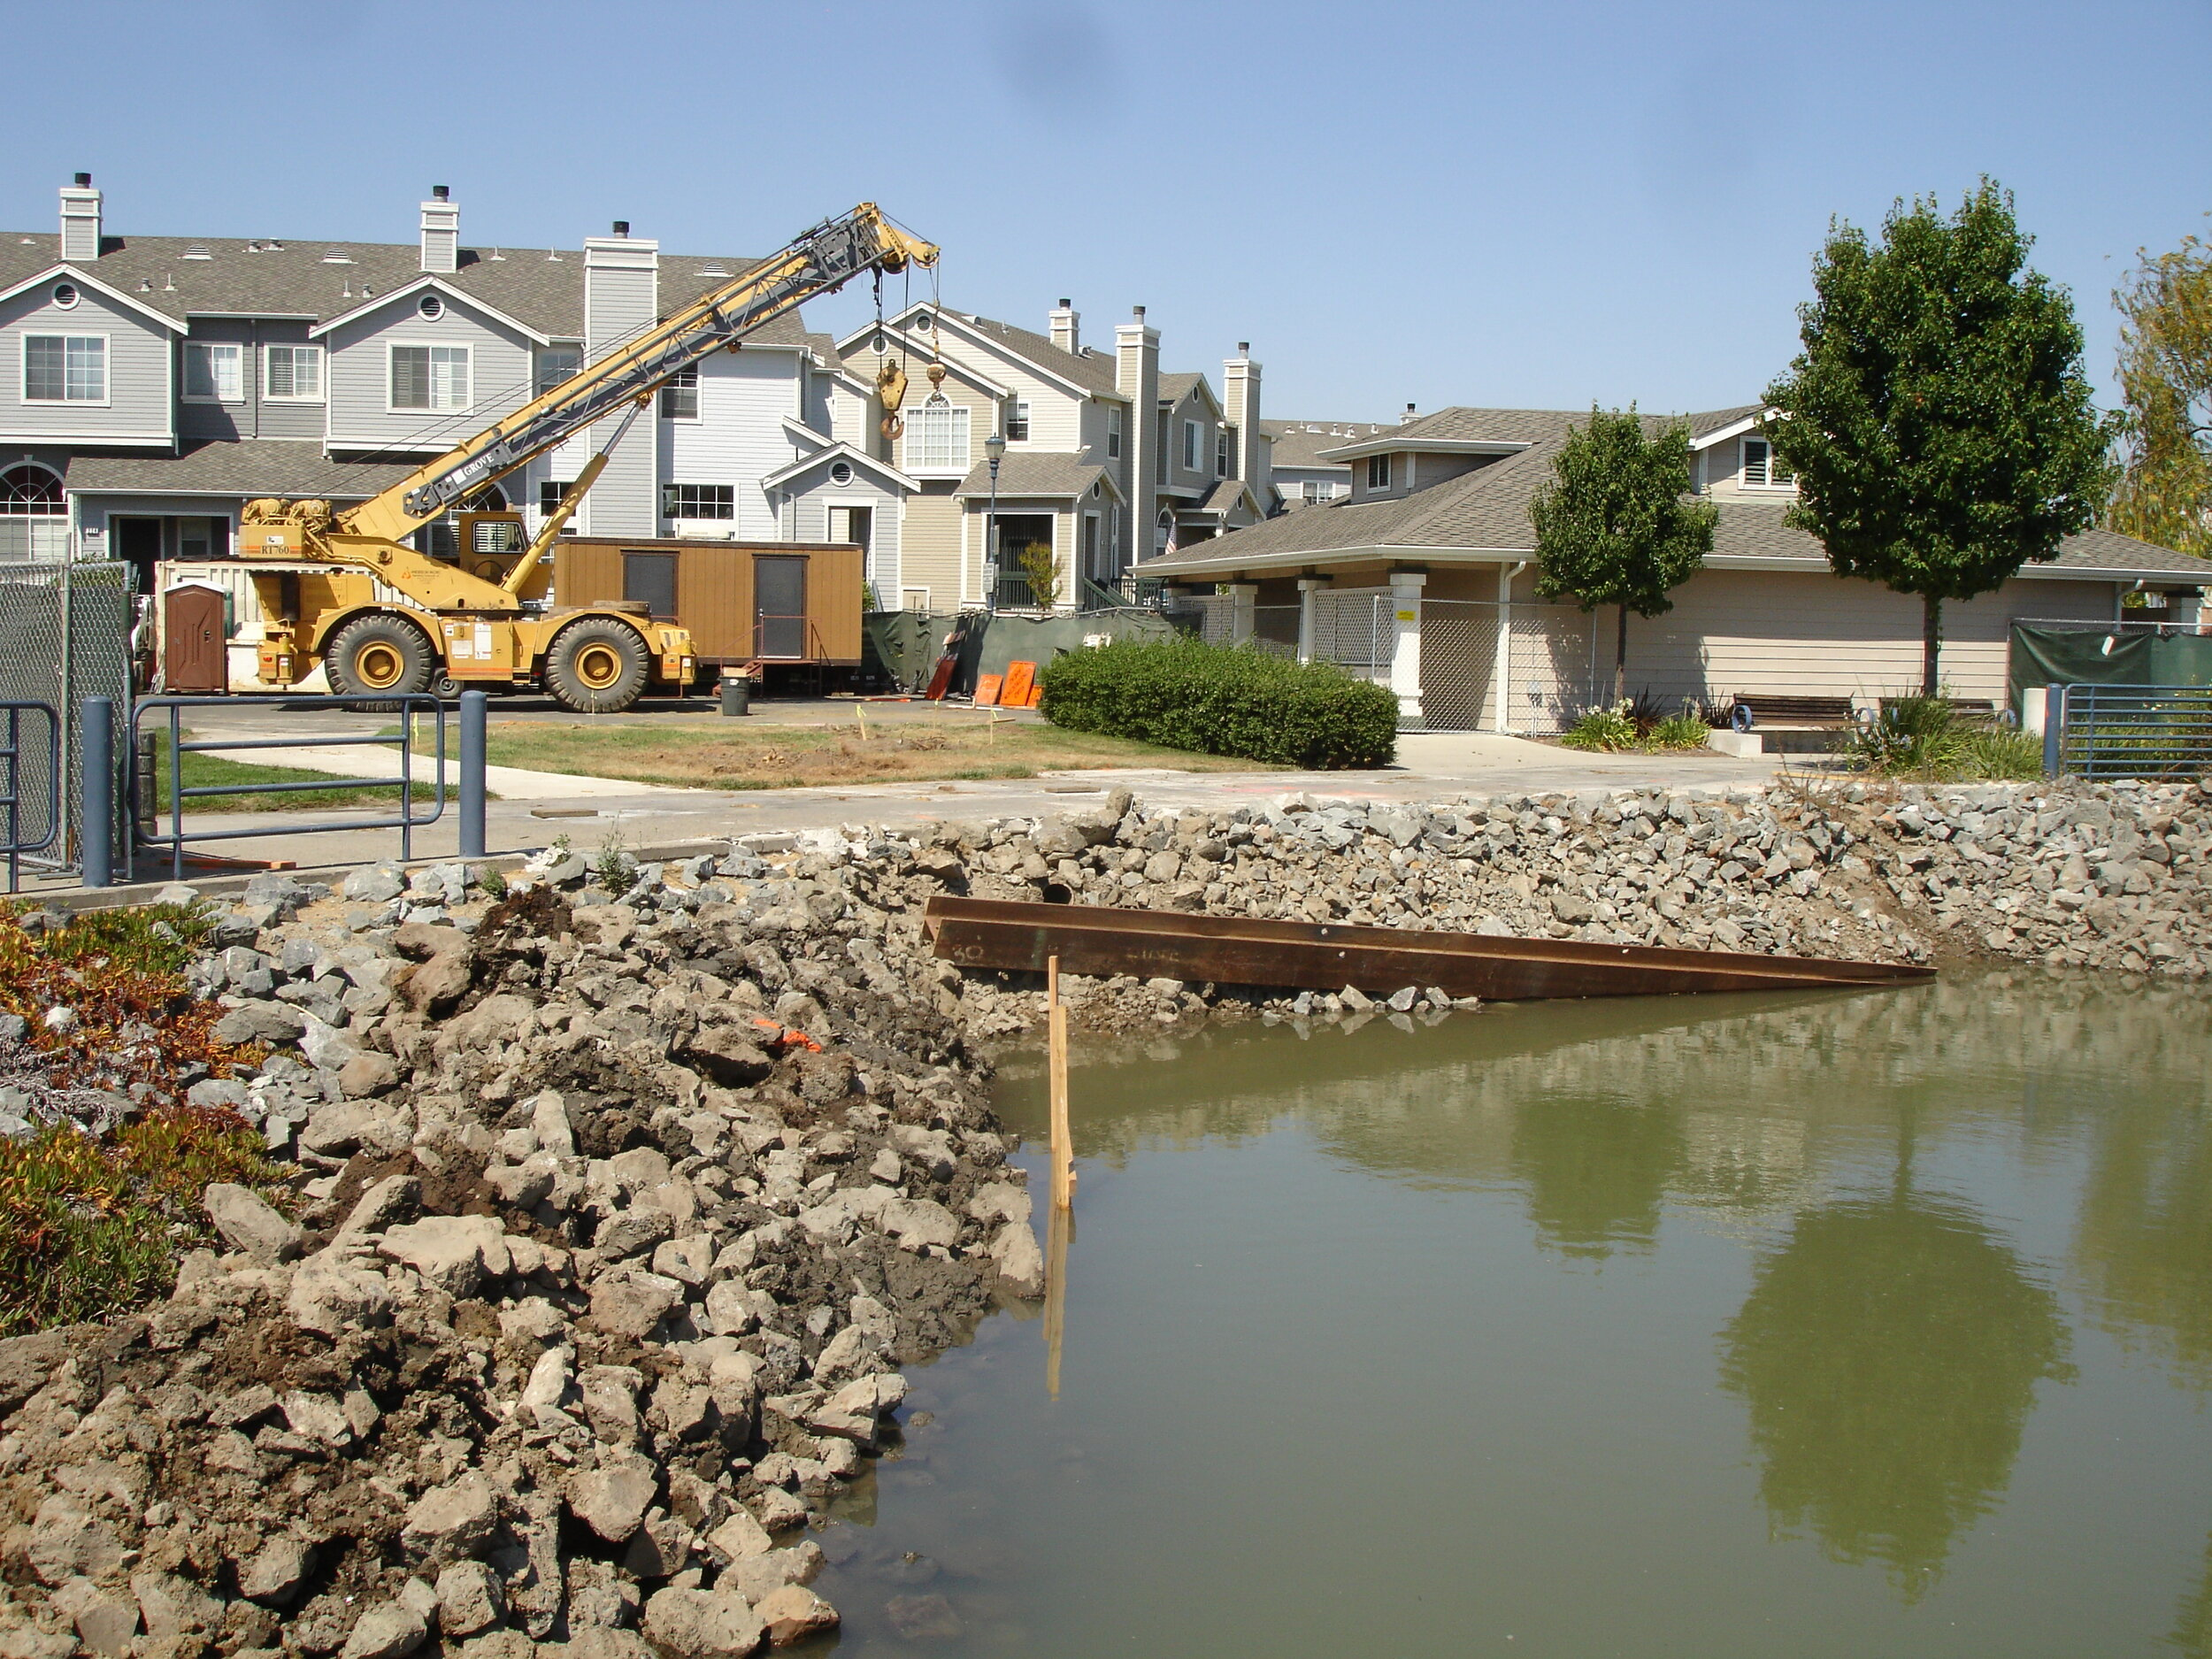 STORM DRAINAGE AND HYDROLOGY  During the construction of a new residential development in an area already prone to frequent flooding, it came to the City of Benicia's attention the existing 66-inch storm drain system on East Second Street was extensively deteriorated.